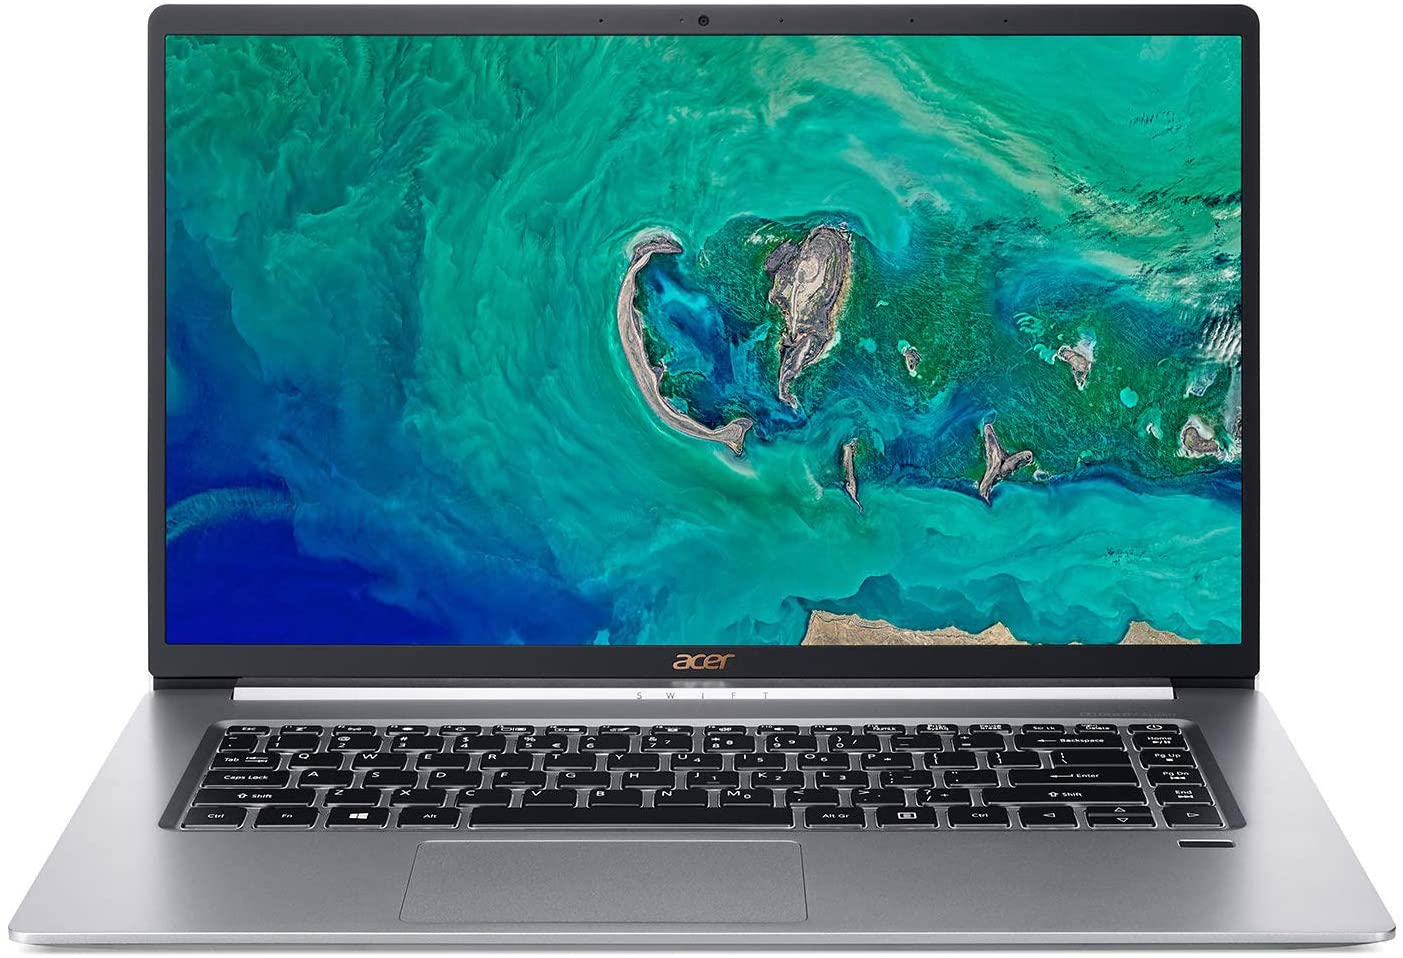 "Acer Swift 5 Ultra-Thin & Lightweight Laptop 15.6"" FHD IPS Touch Display in a thin .23"" bezel, 8th Gen Intel Core i7-8565U, 16GB DDR4, 512GB PCIe NVMe SSD, Back-lit Keyboard, Windows 10 SF515-51T-73TY"